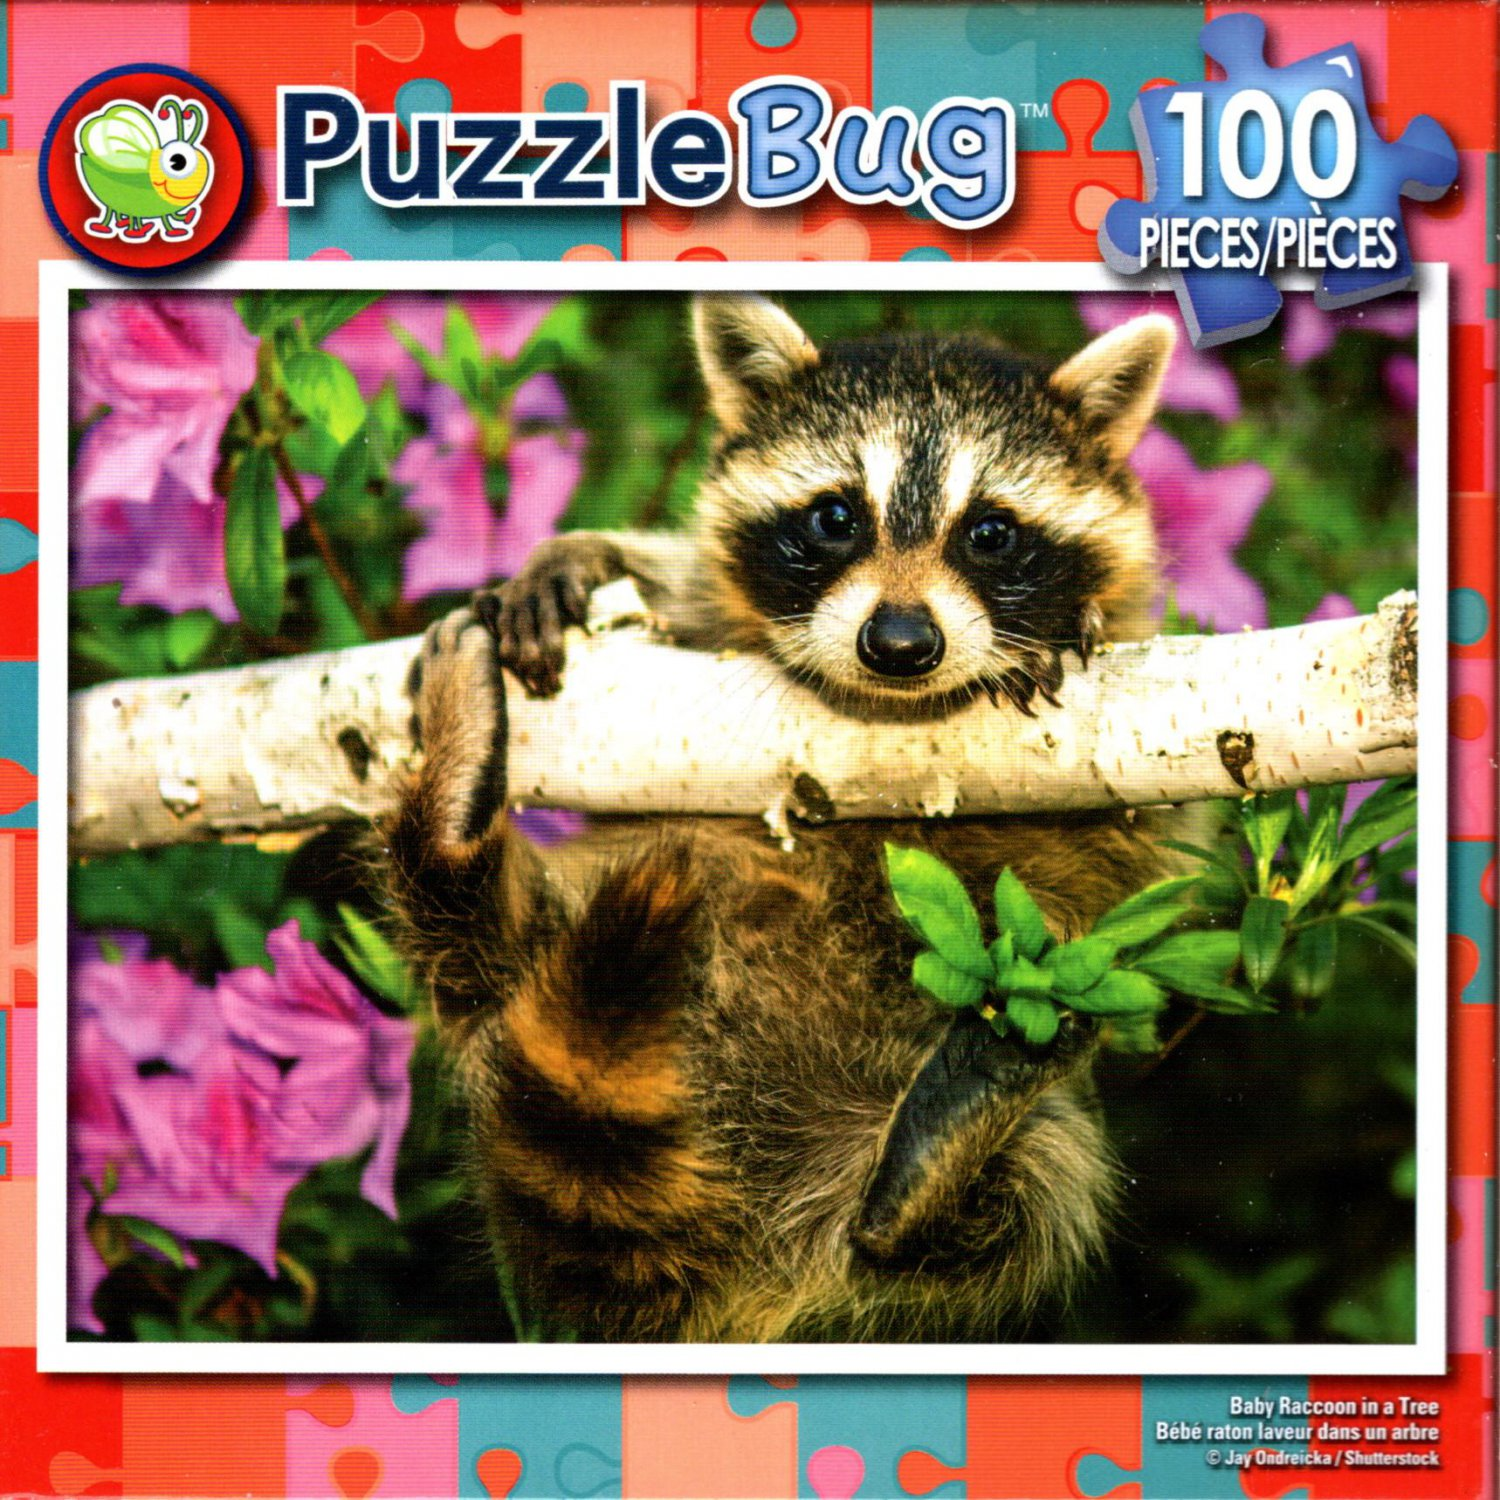 Baby Raccoon in the Tree - 100 Pieces Jigsaw Puzzle